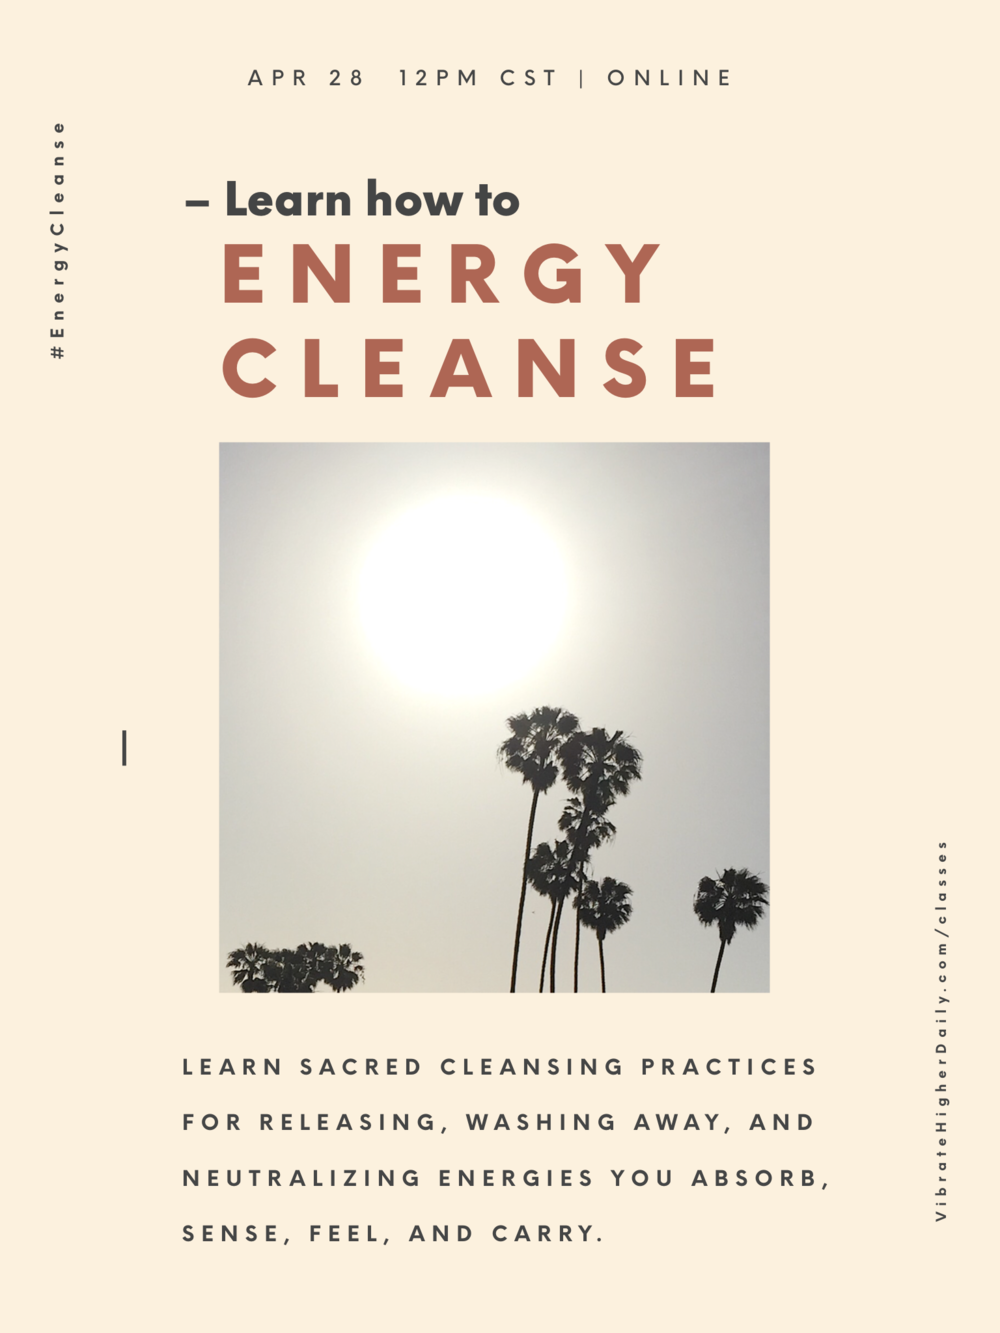 Energy Cleanse - $15Learn sacred cleansing practicesfor releasing, washing away, andneutralizing energies you absorb,sense, feel, and carry.